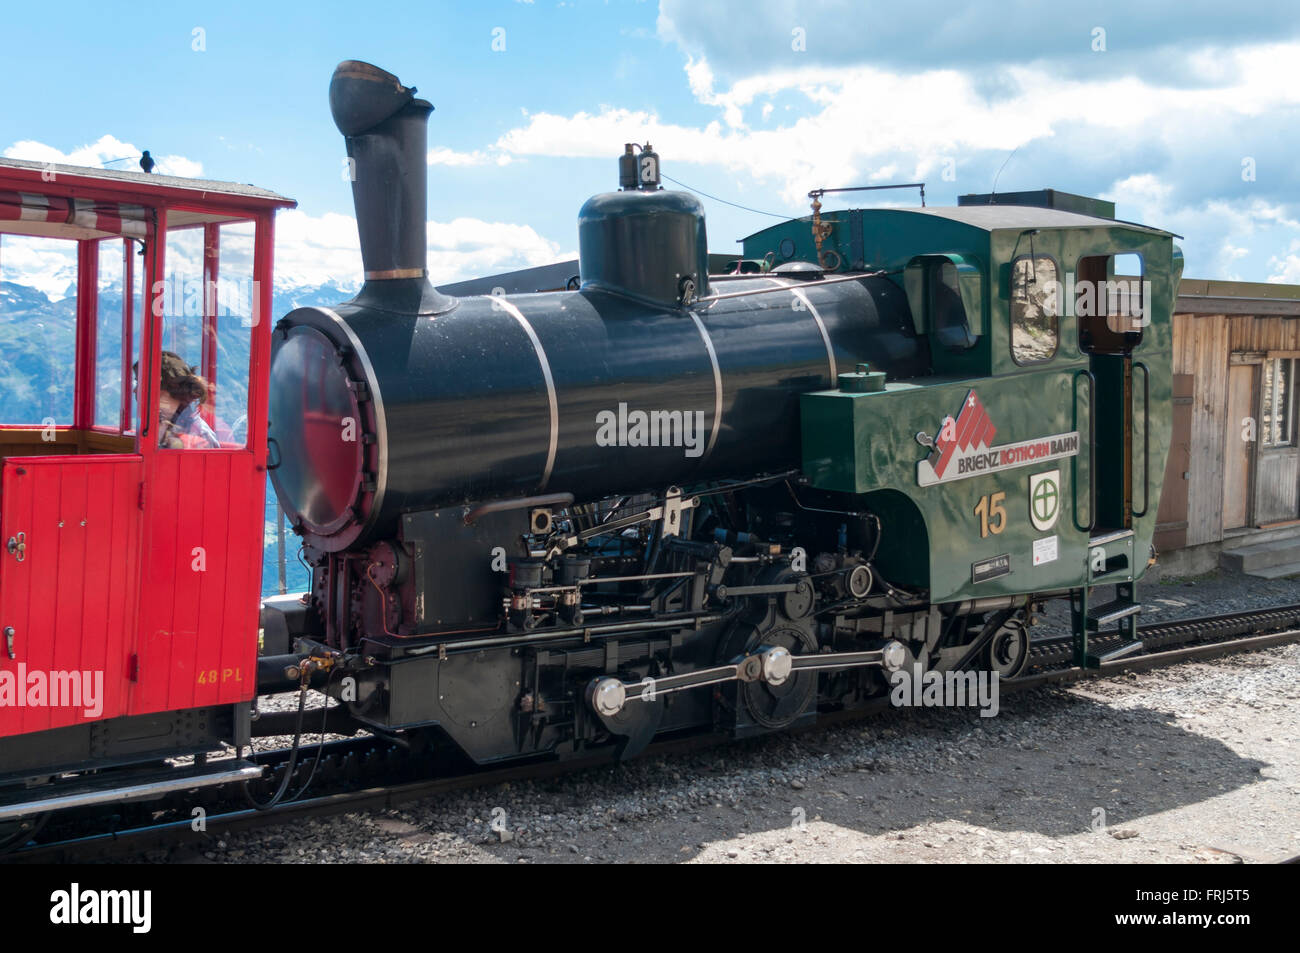 Modern SLM steam engine of the BRB Brienz Rothorn Bahn rack railway, built by SLM in 1996. Brienzer Rothorn, Switzerland. - Stock Image